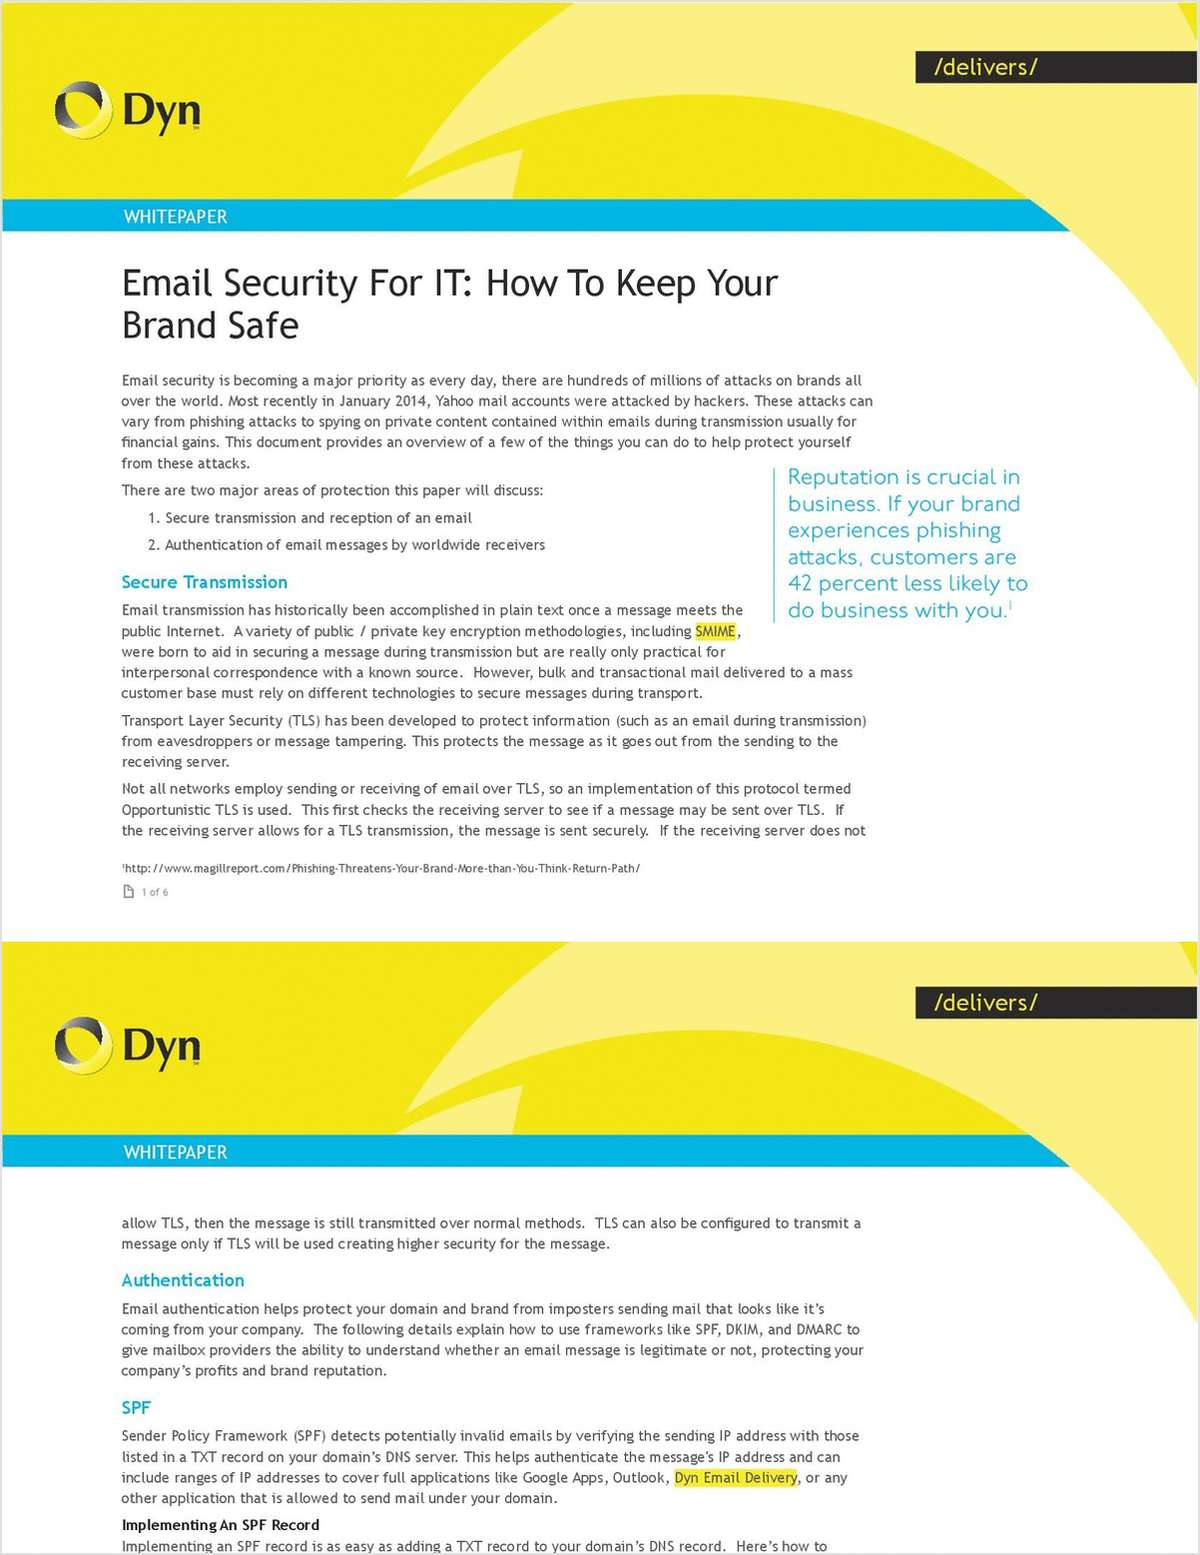 Email Security For IT: How To Keep Your Brand Safe